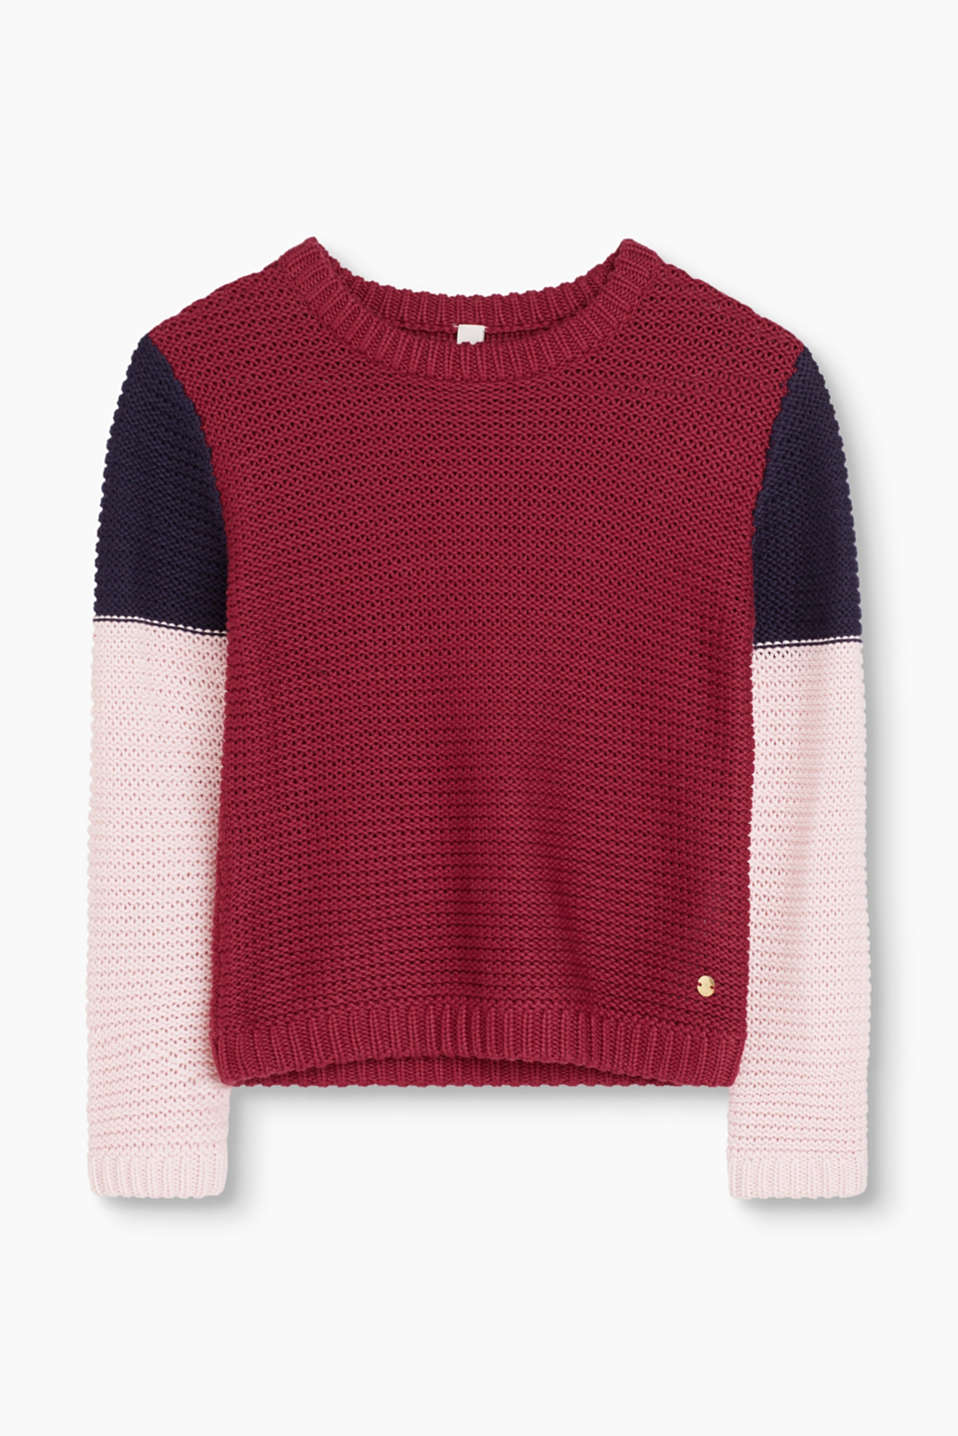 We love knitwear! This knit jumper features colour block stripes at the sleeves